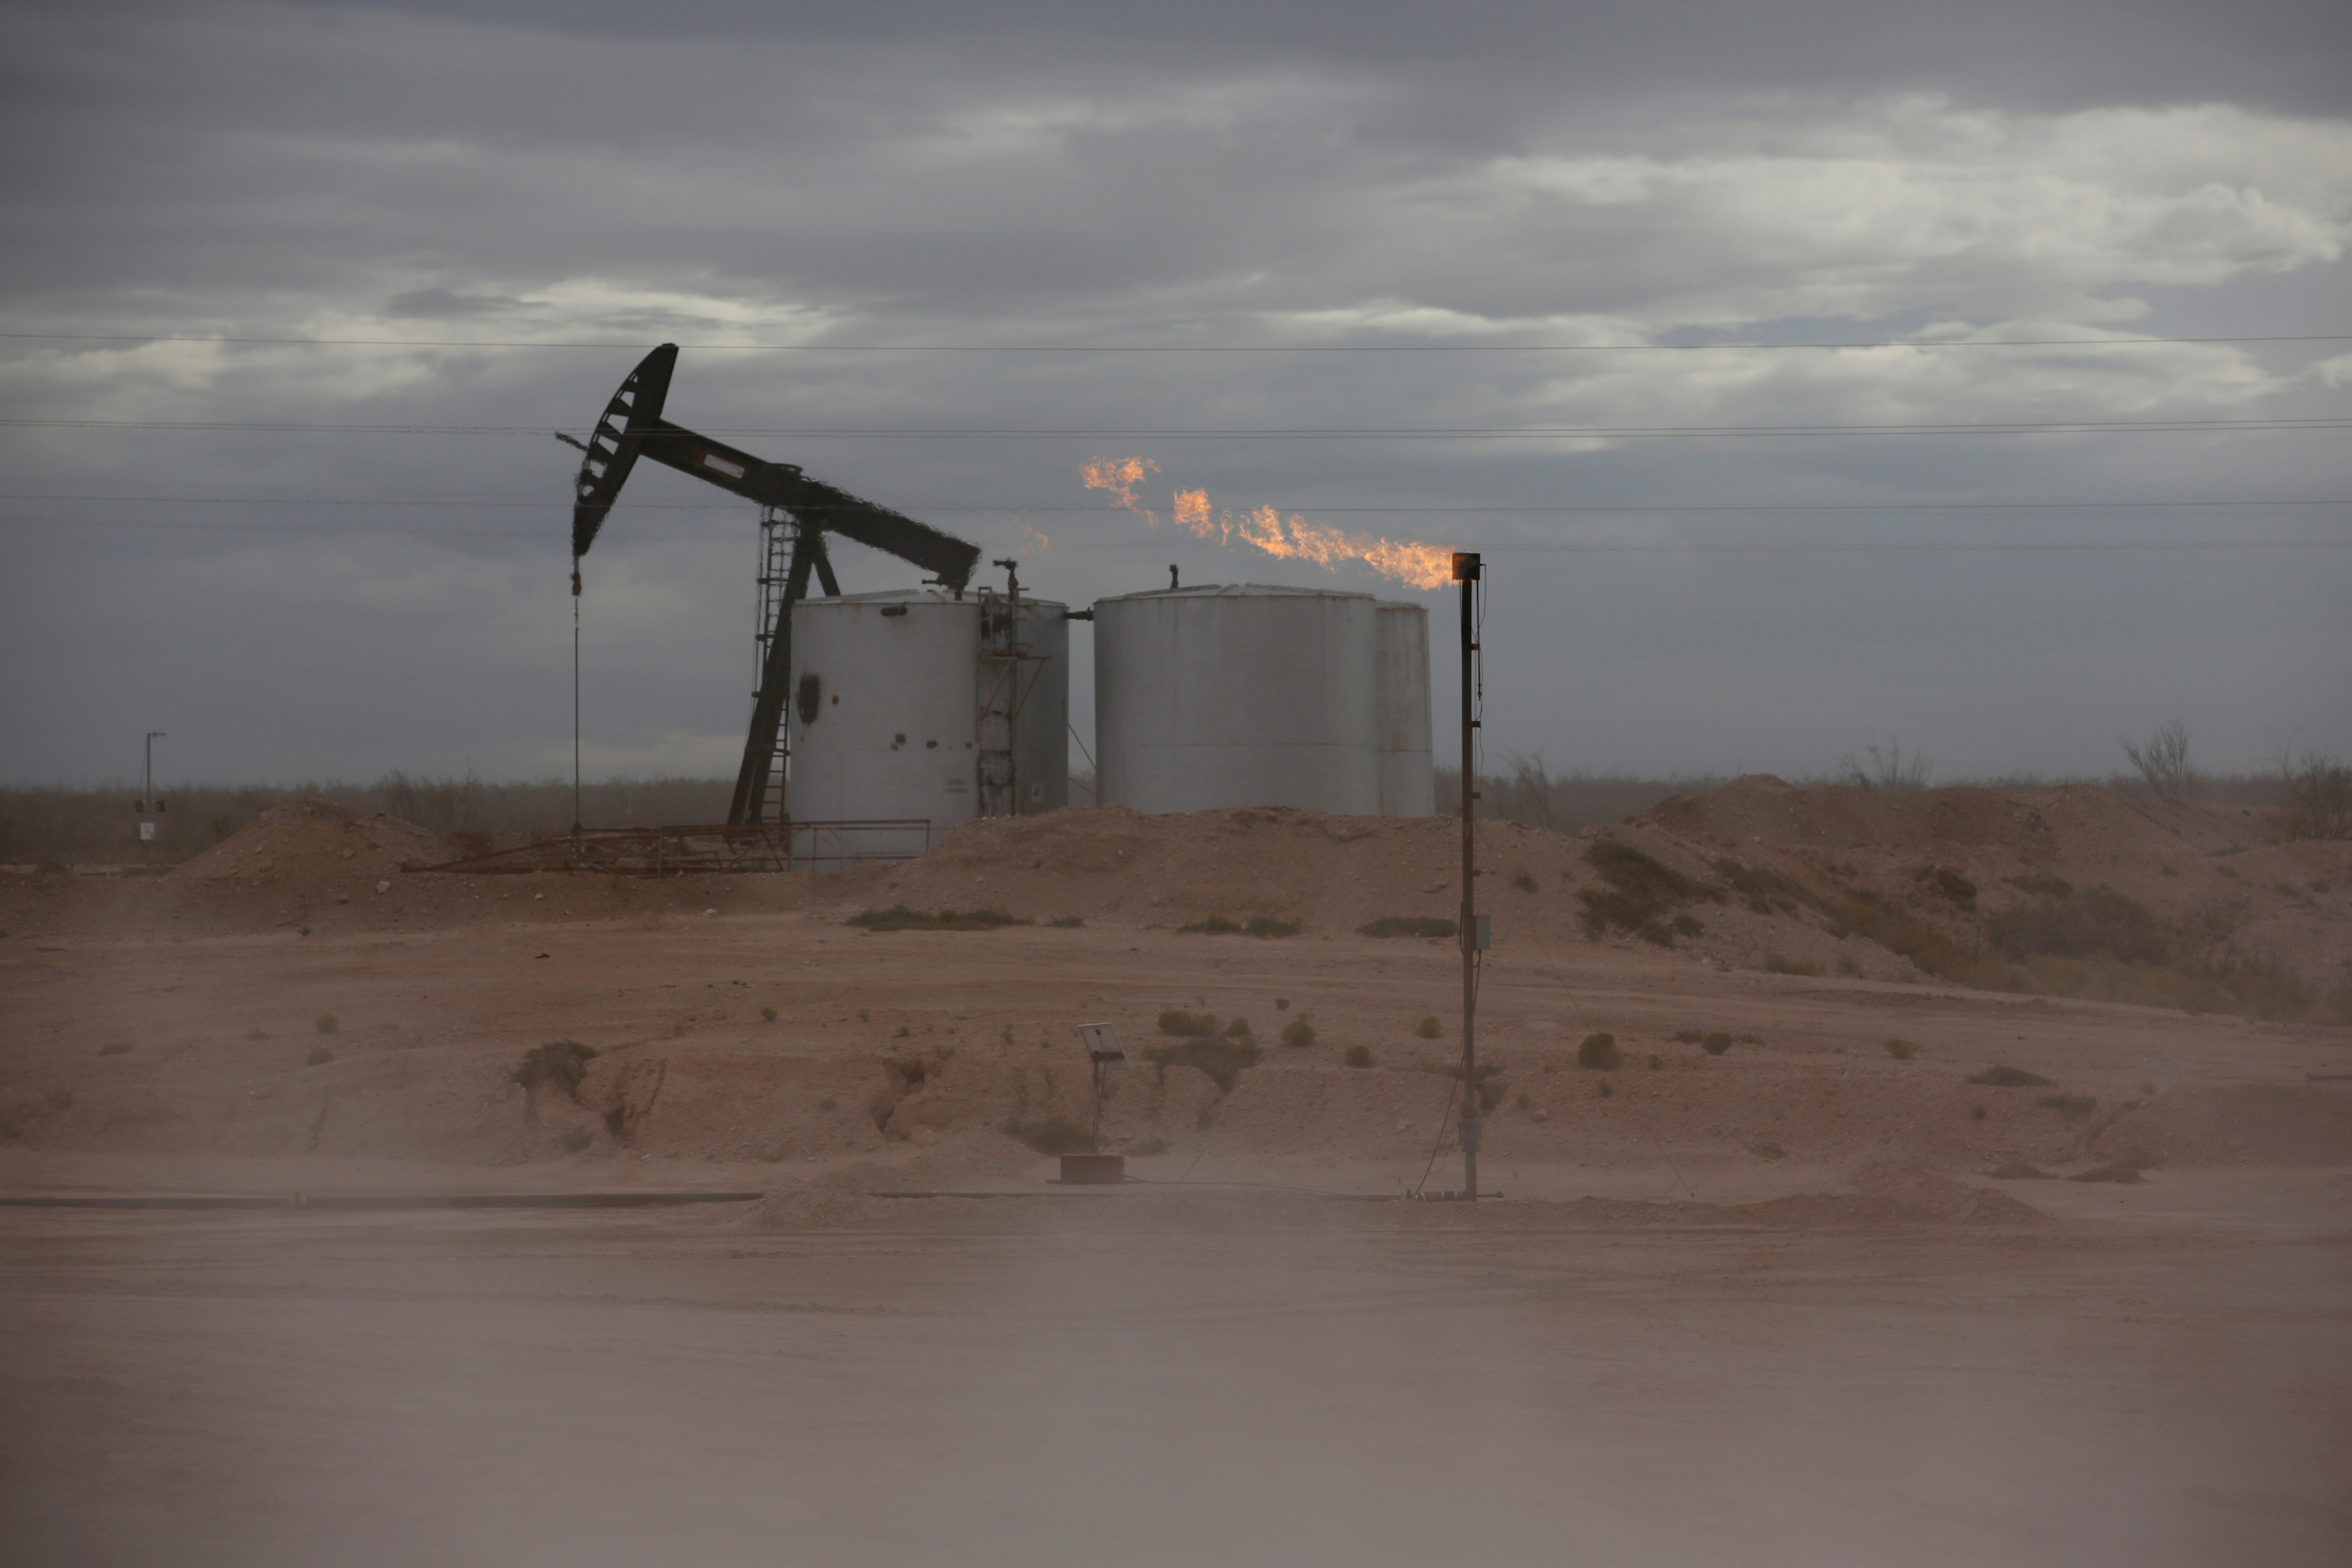 Dust blows around a crude oil pump jack and flare burning excess gas at a drill pad in the Permian Basin in Loving County, Texas, U.S. November 25, 2019. REUTERS/Angus Mordan/File Photo